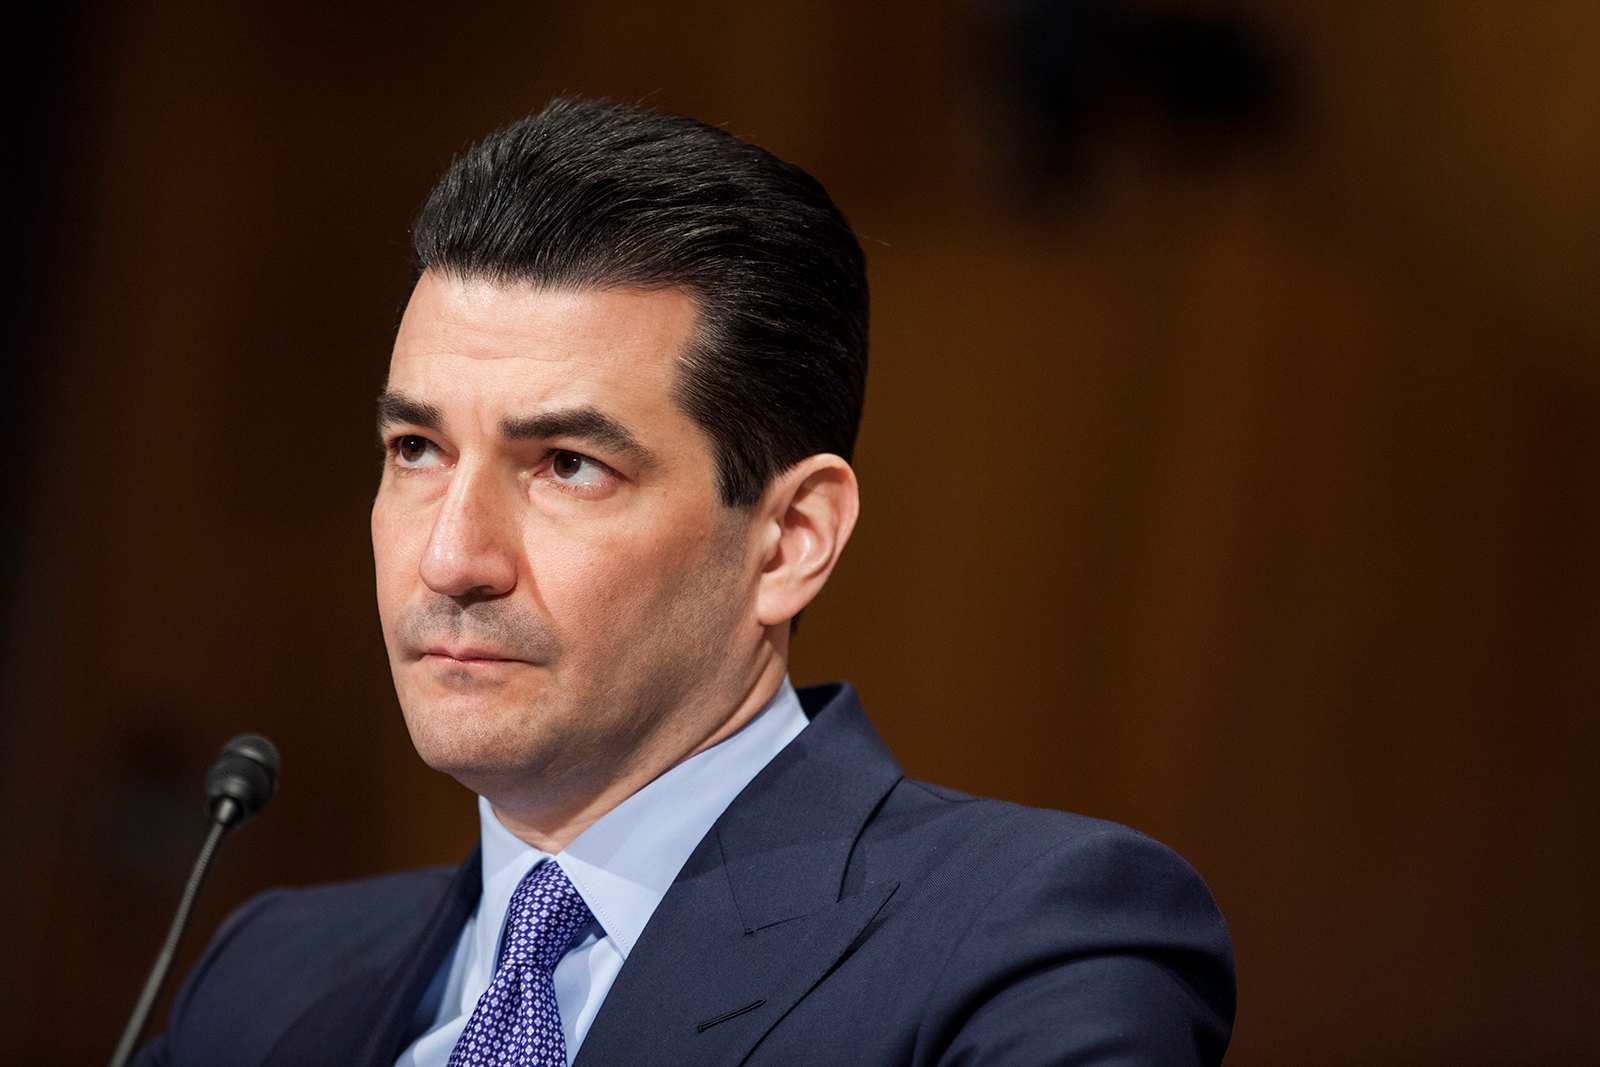 Dr. Scott Gottlieb, then FDA Commissioner-designate, testifies during a Senate Health, Education, Labor and Pensions Committee hearing on Capitol Hill in Washington, DC, on April 5, 2017.